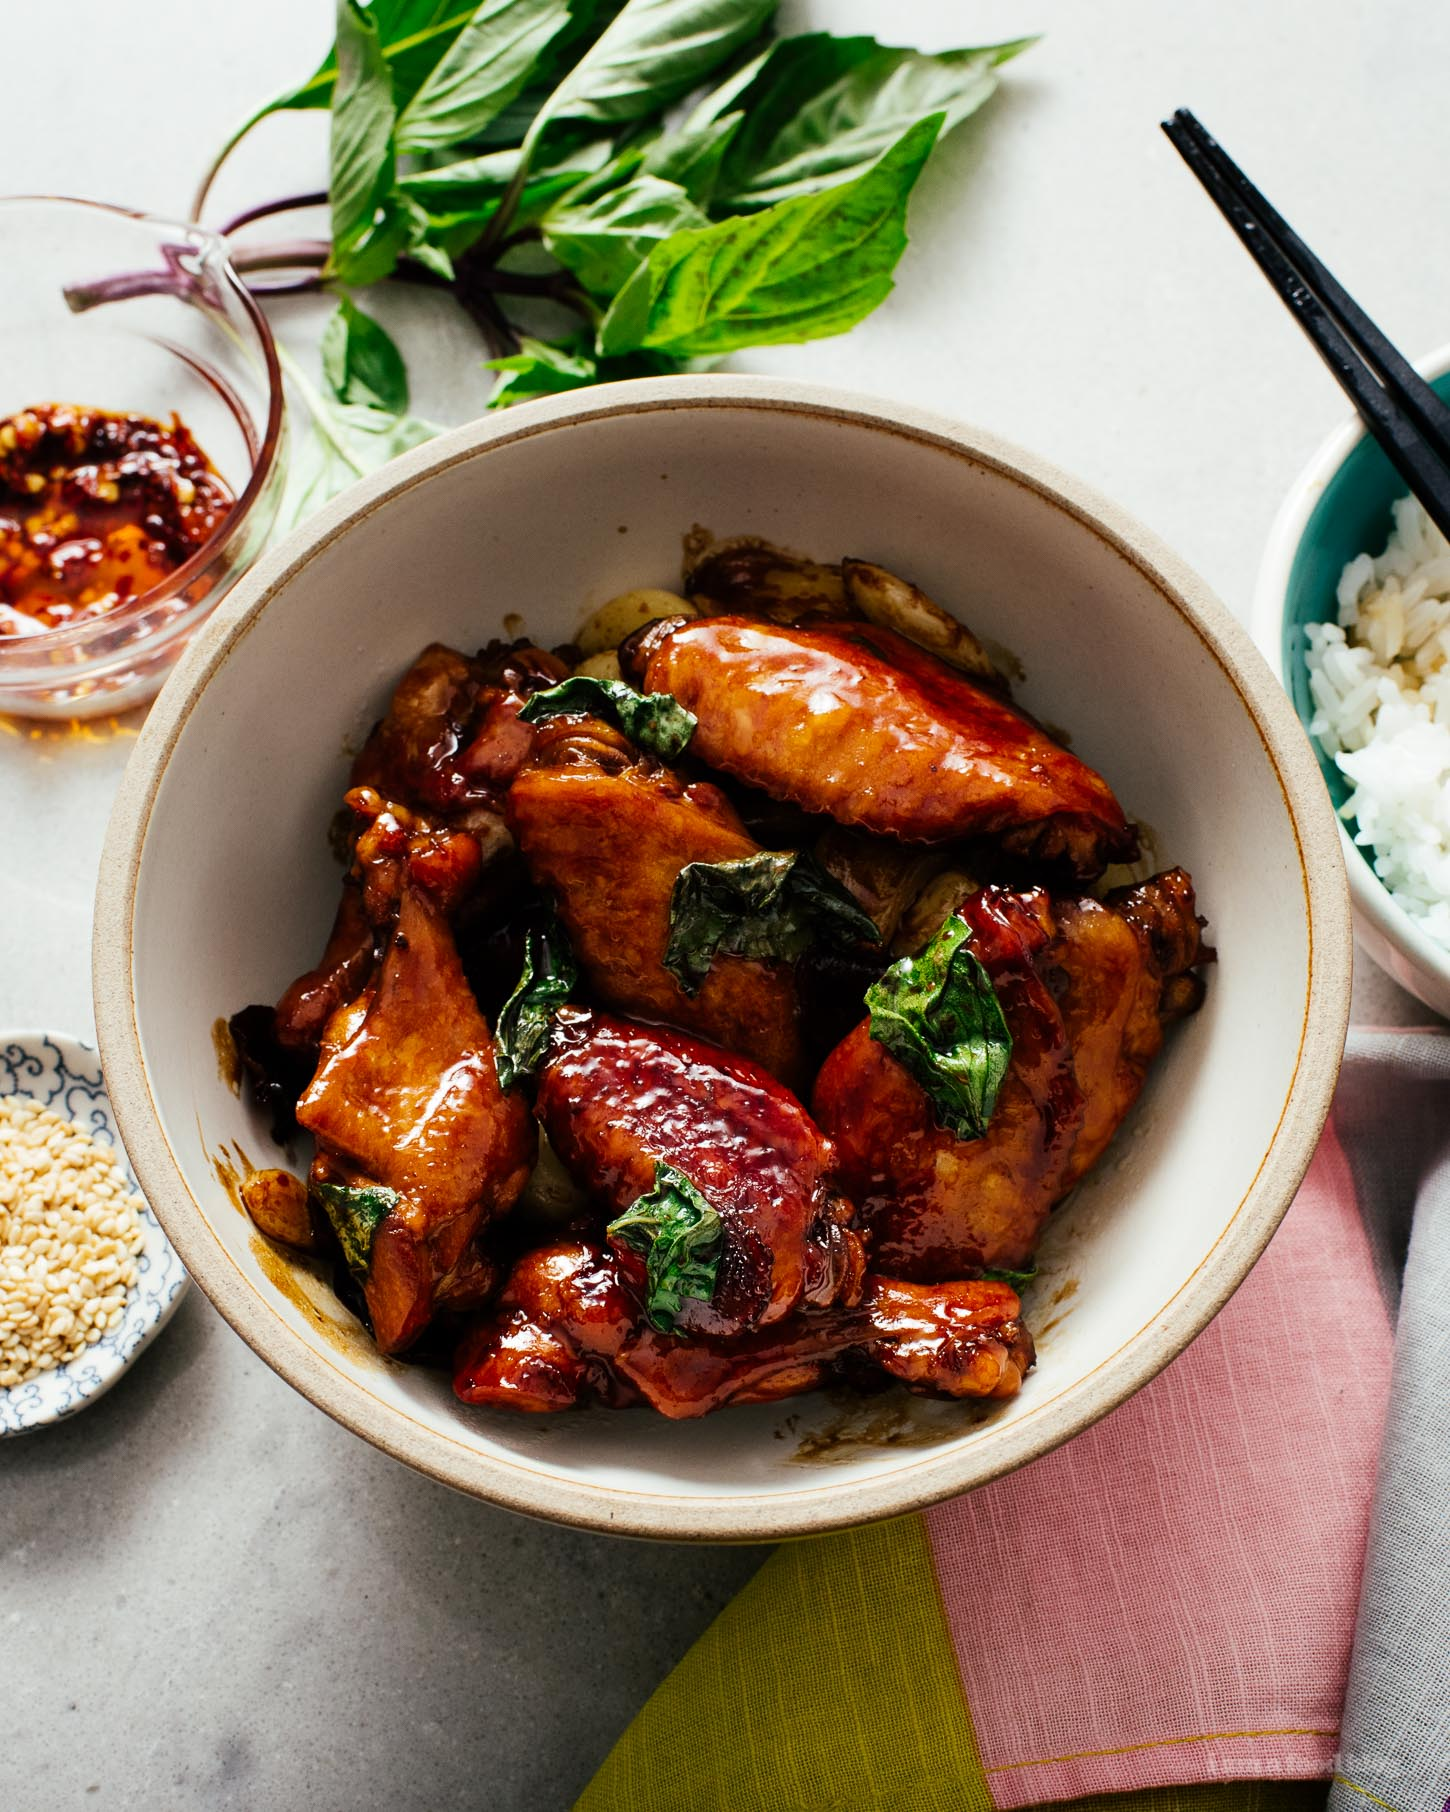 San Bei Ji: 15 Minute Easy Taiwanese 3 Cup Chicken Recipe | www.iamafoodblog.com